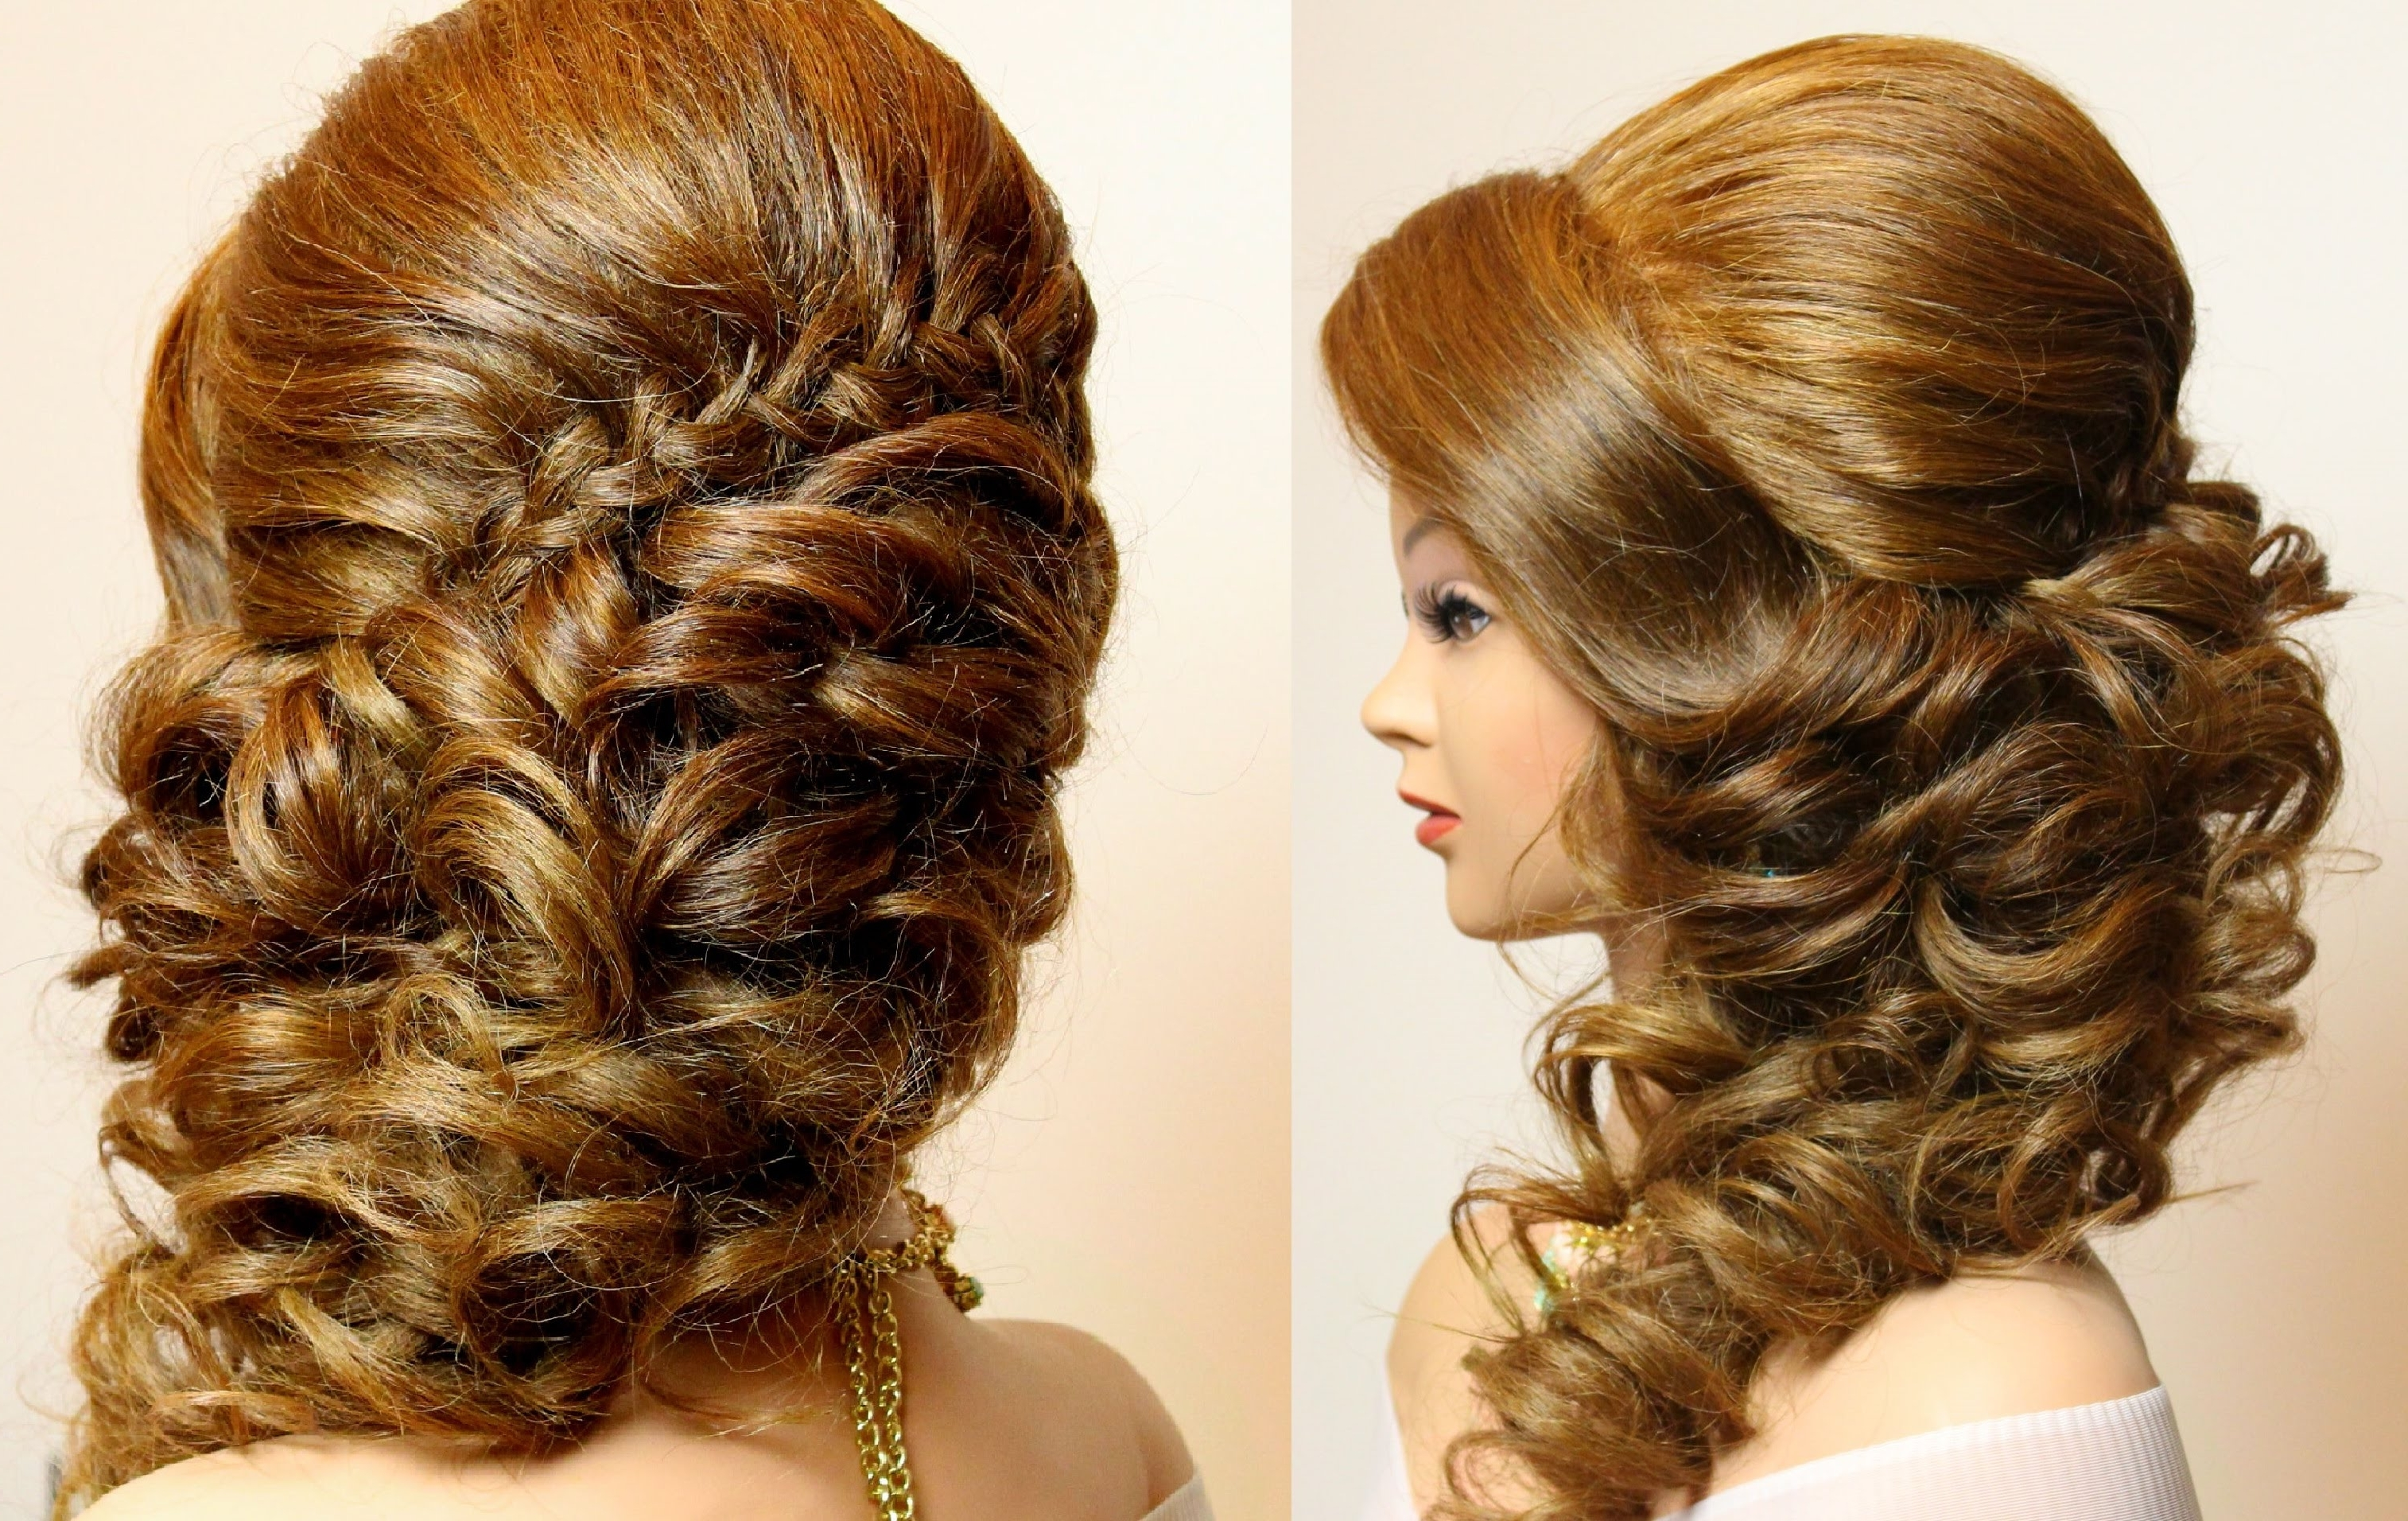 Fashionable Braids With Curls Hairstyles Within Bridal Hairstyle With Braid And Curls (View 9 of 20)